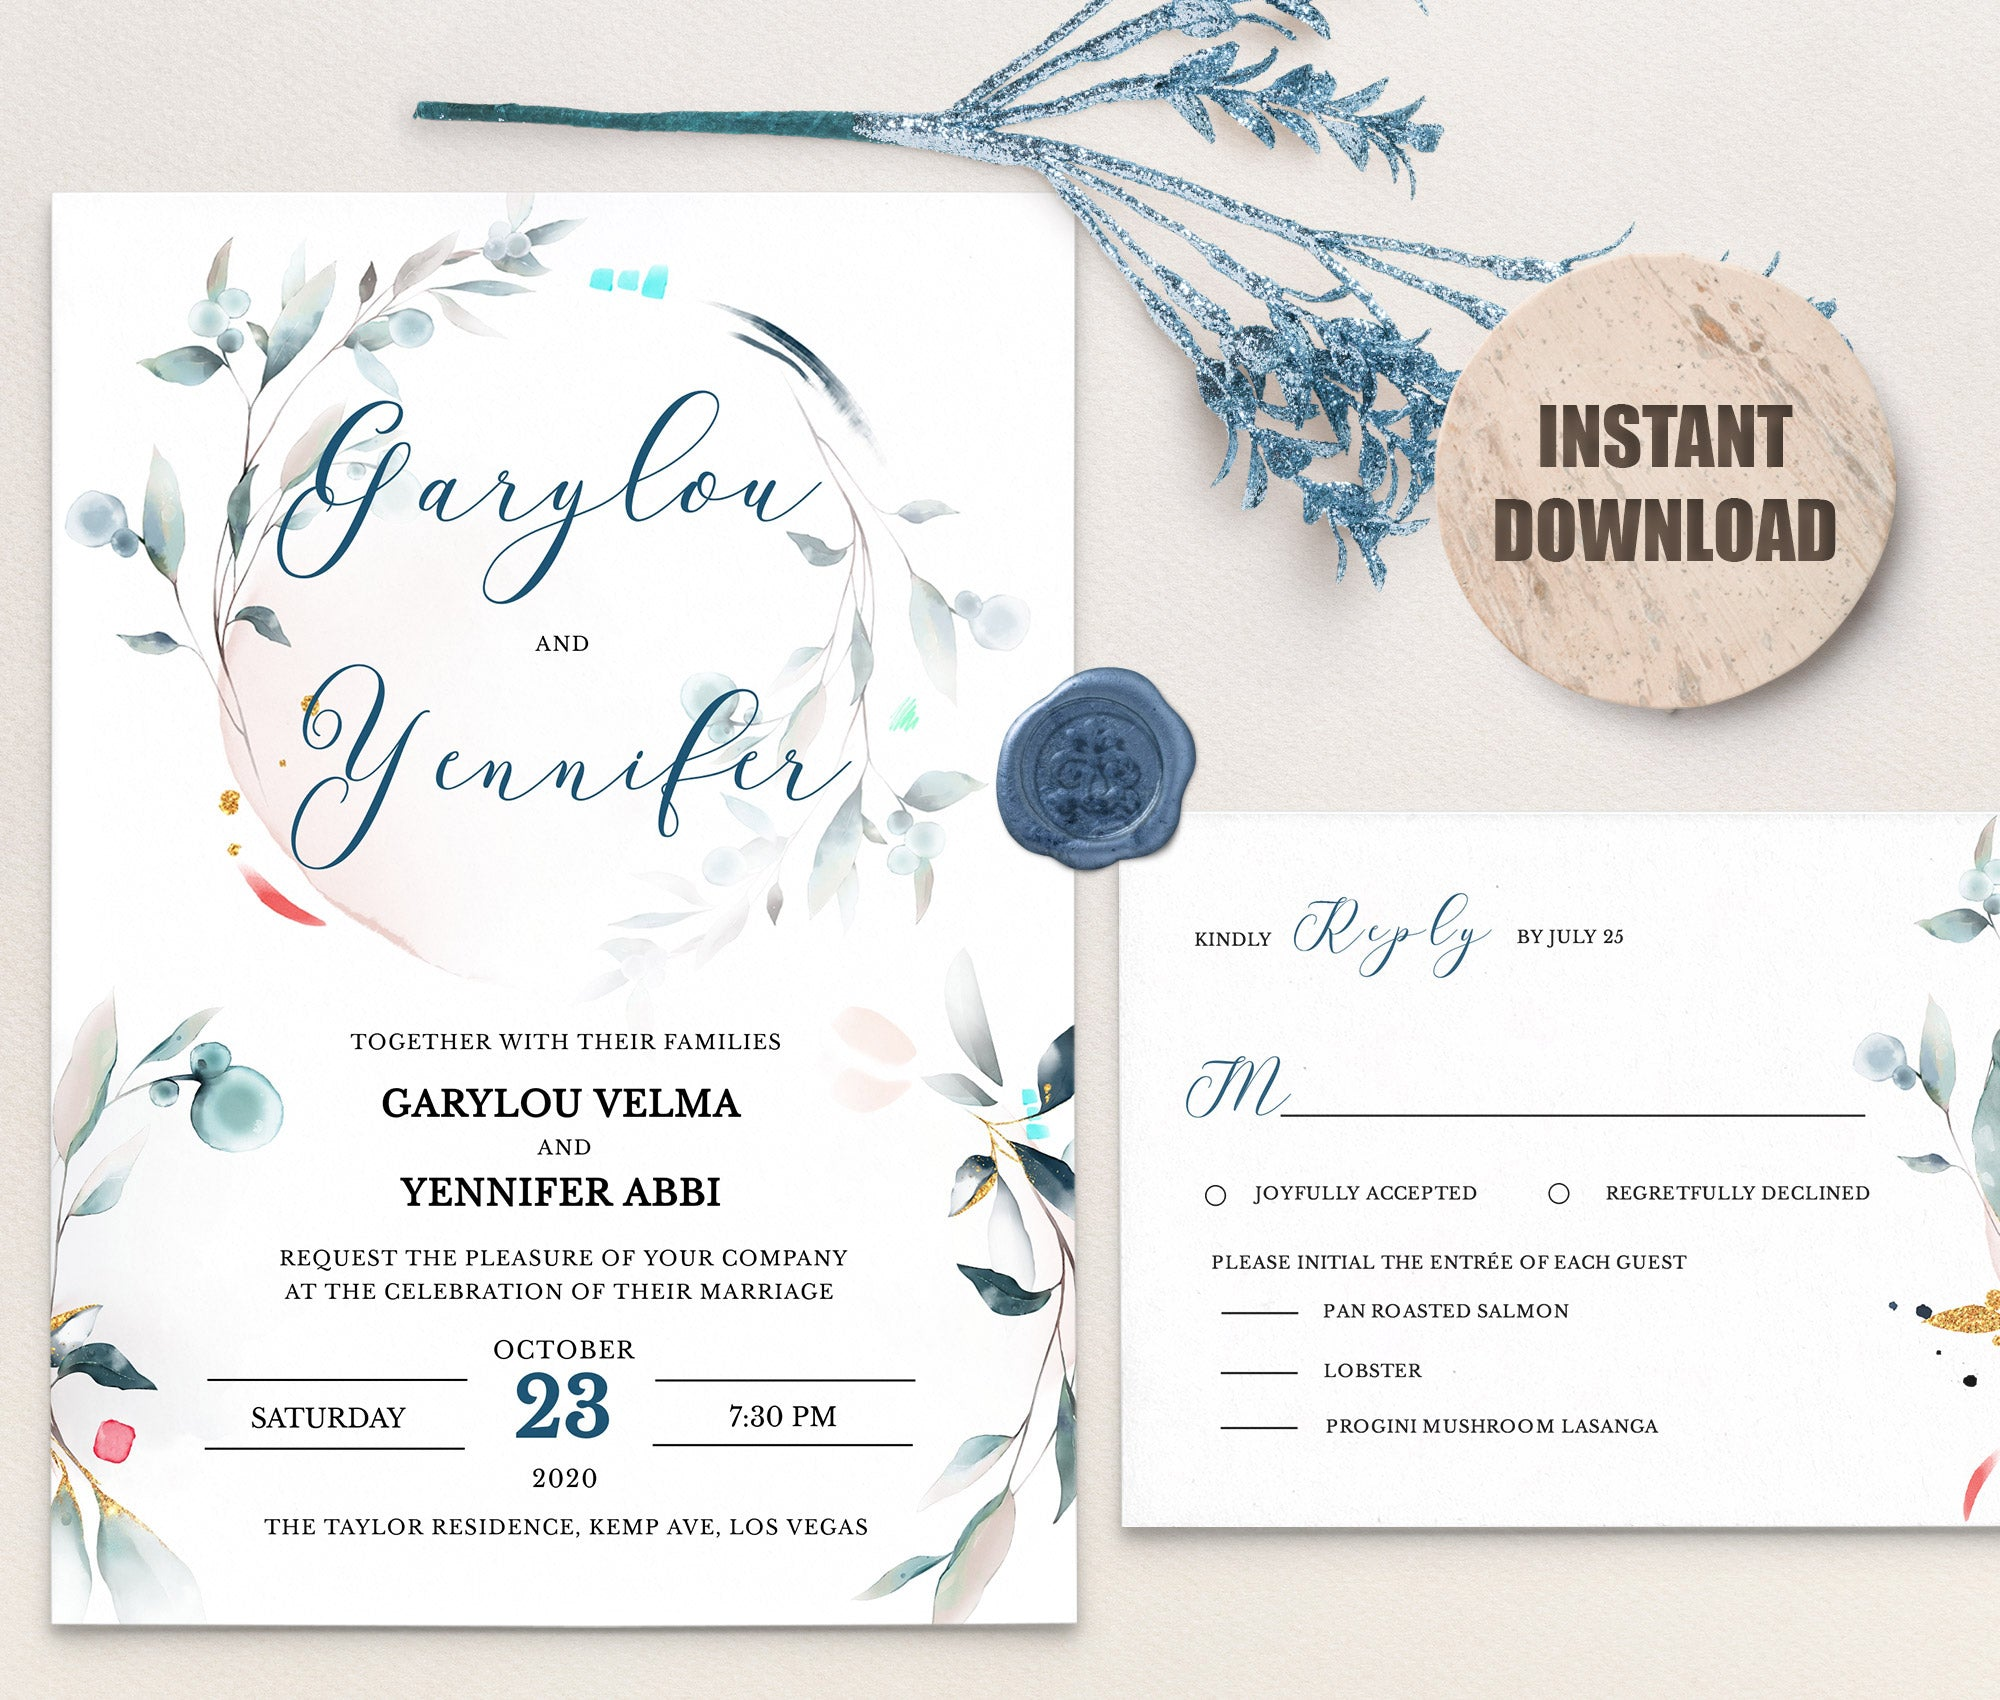 SPMR - Wedding Invitation and RSVP set 6 - Greenlanderdesign